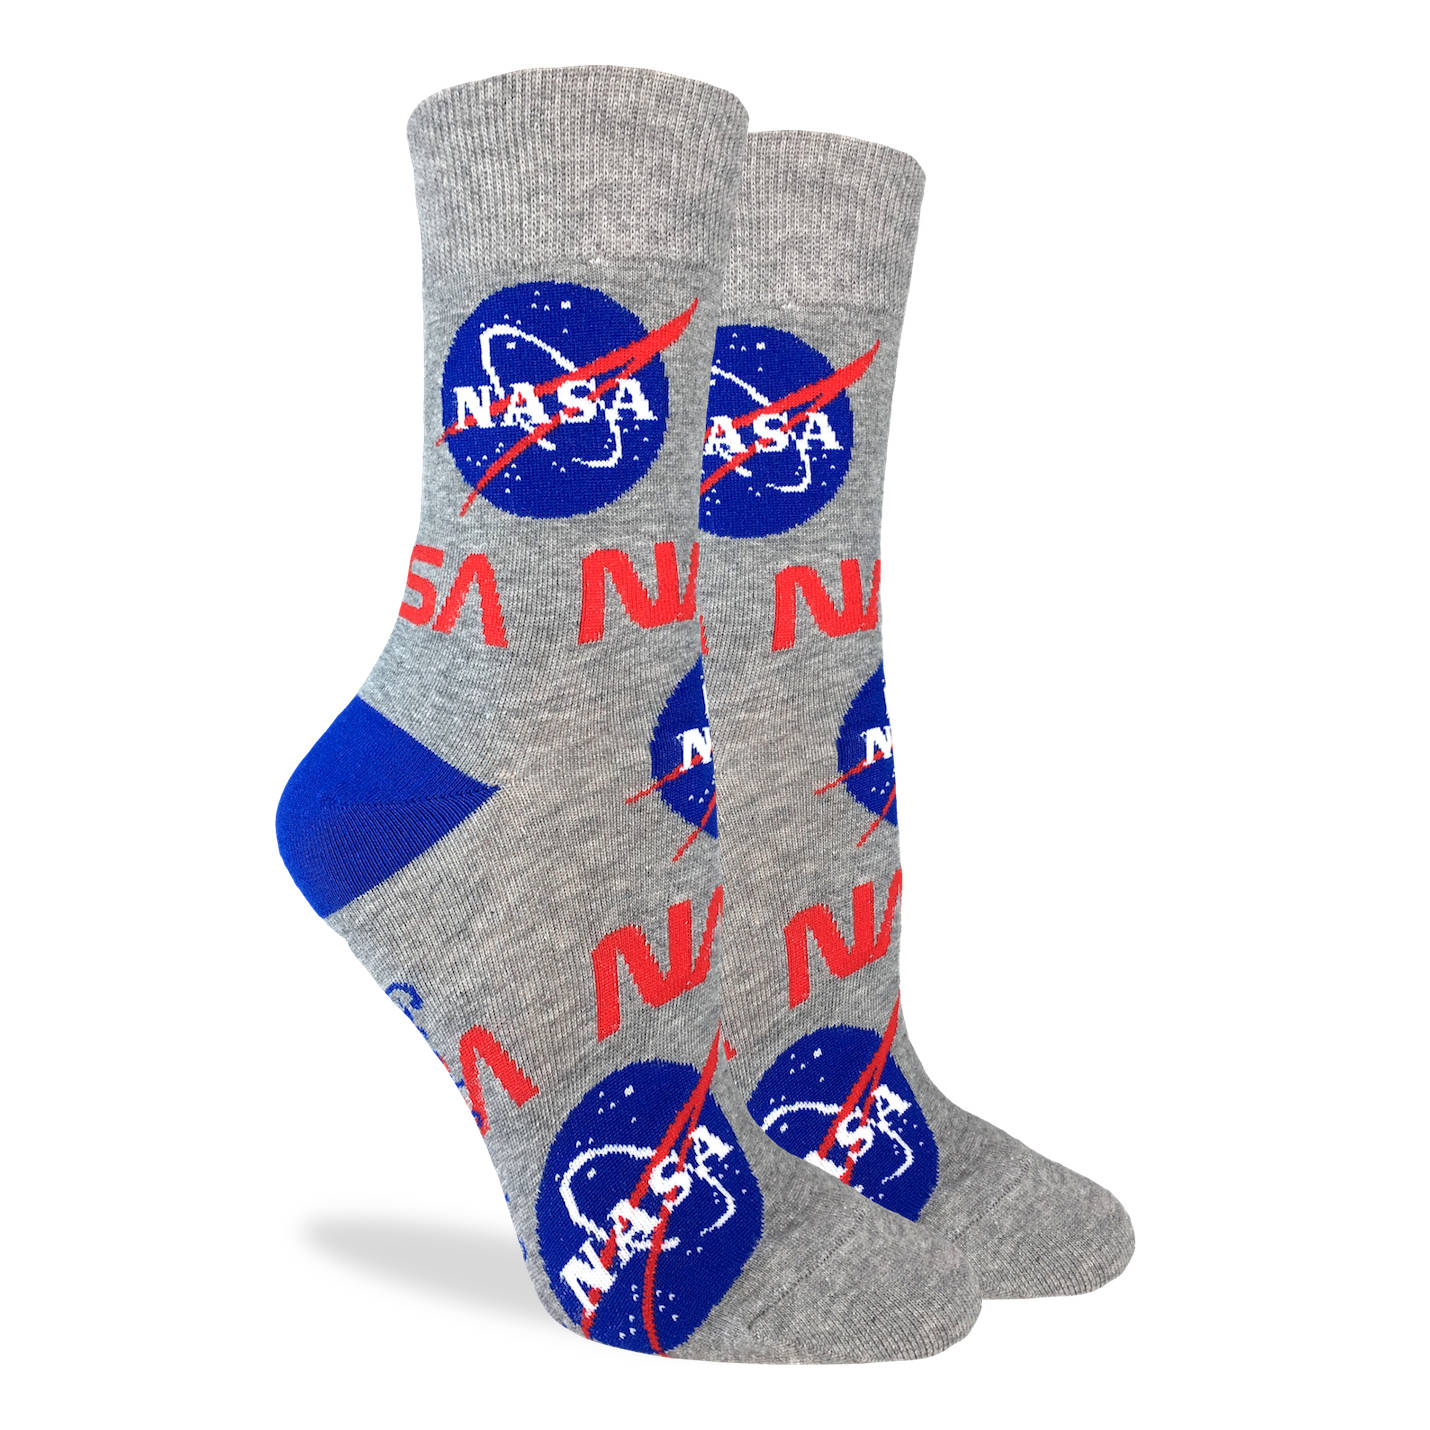 Women's NASA Socks,3173